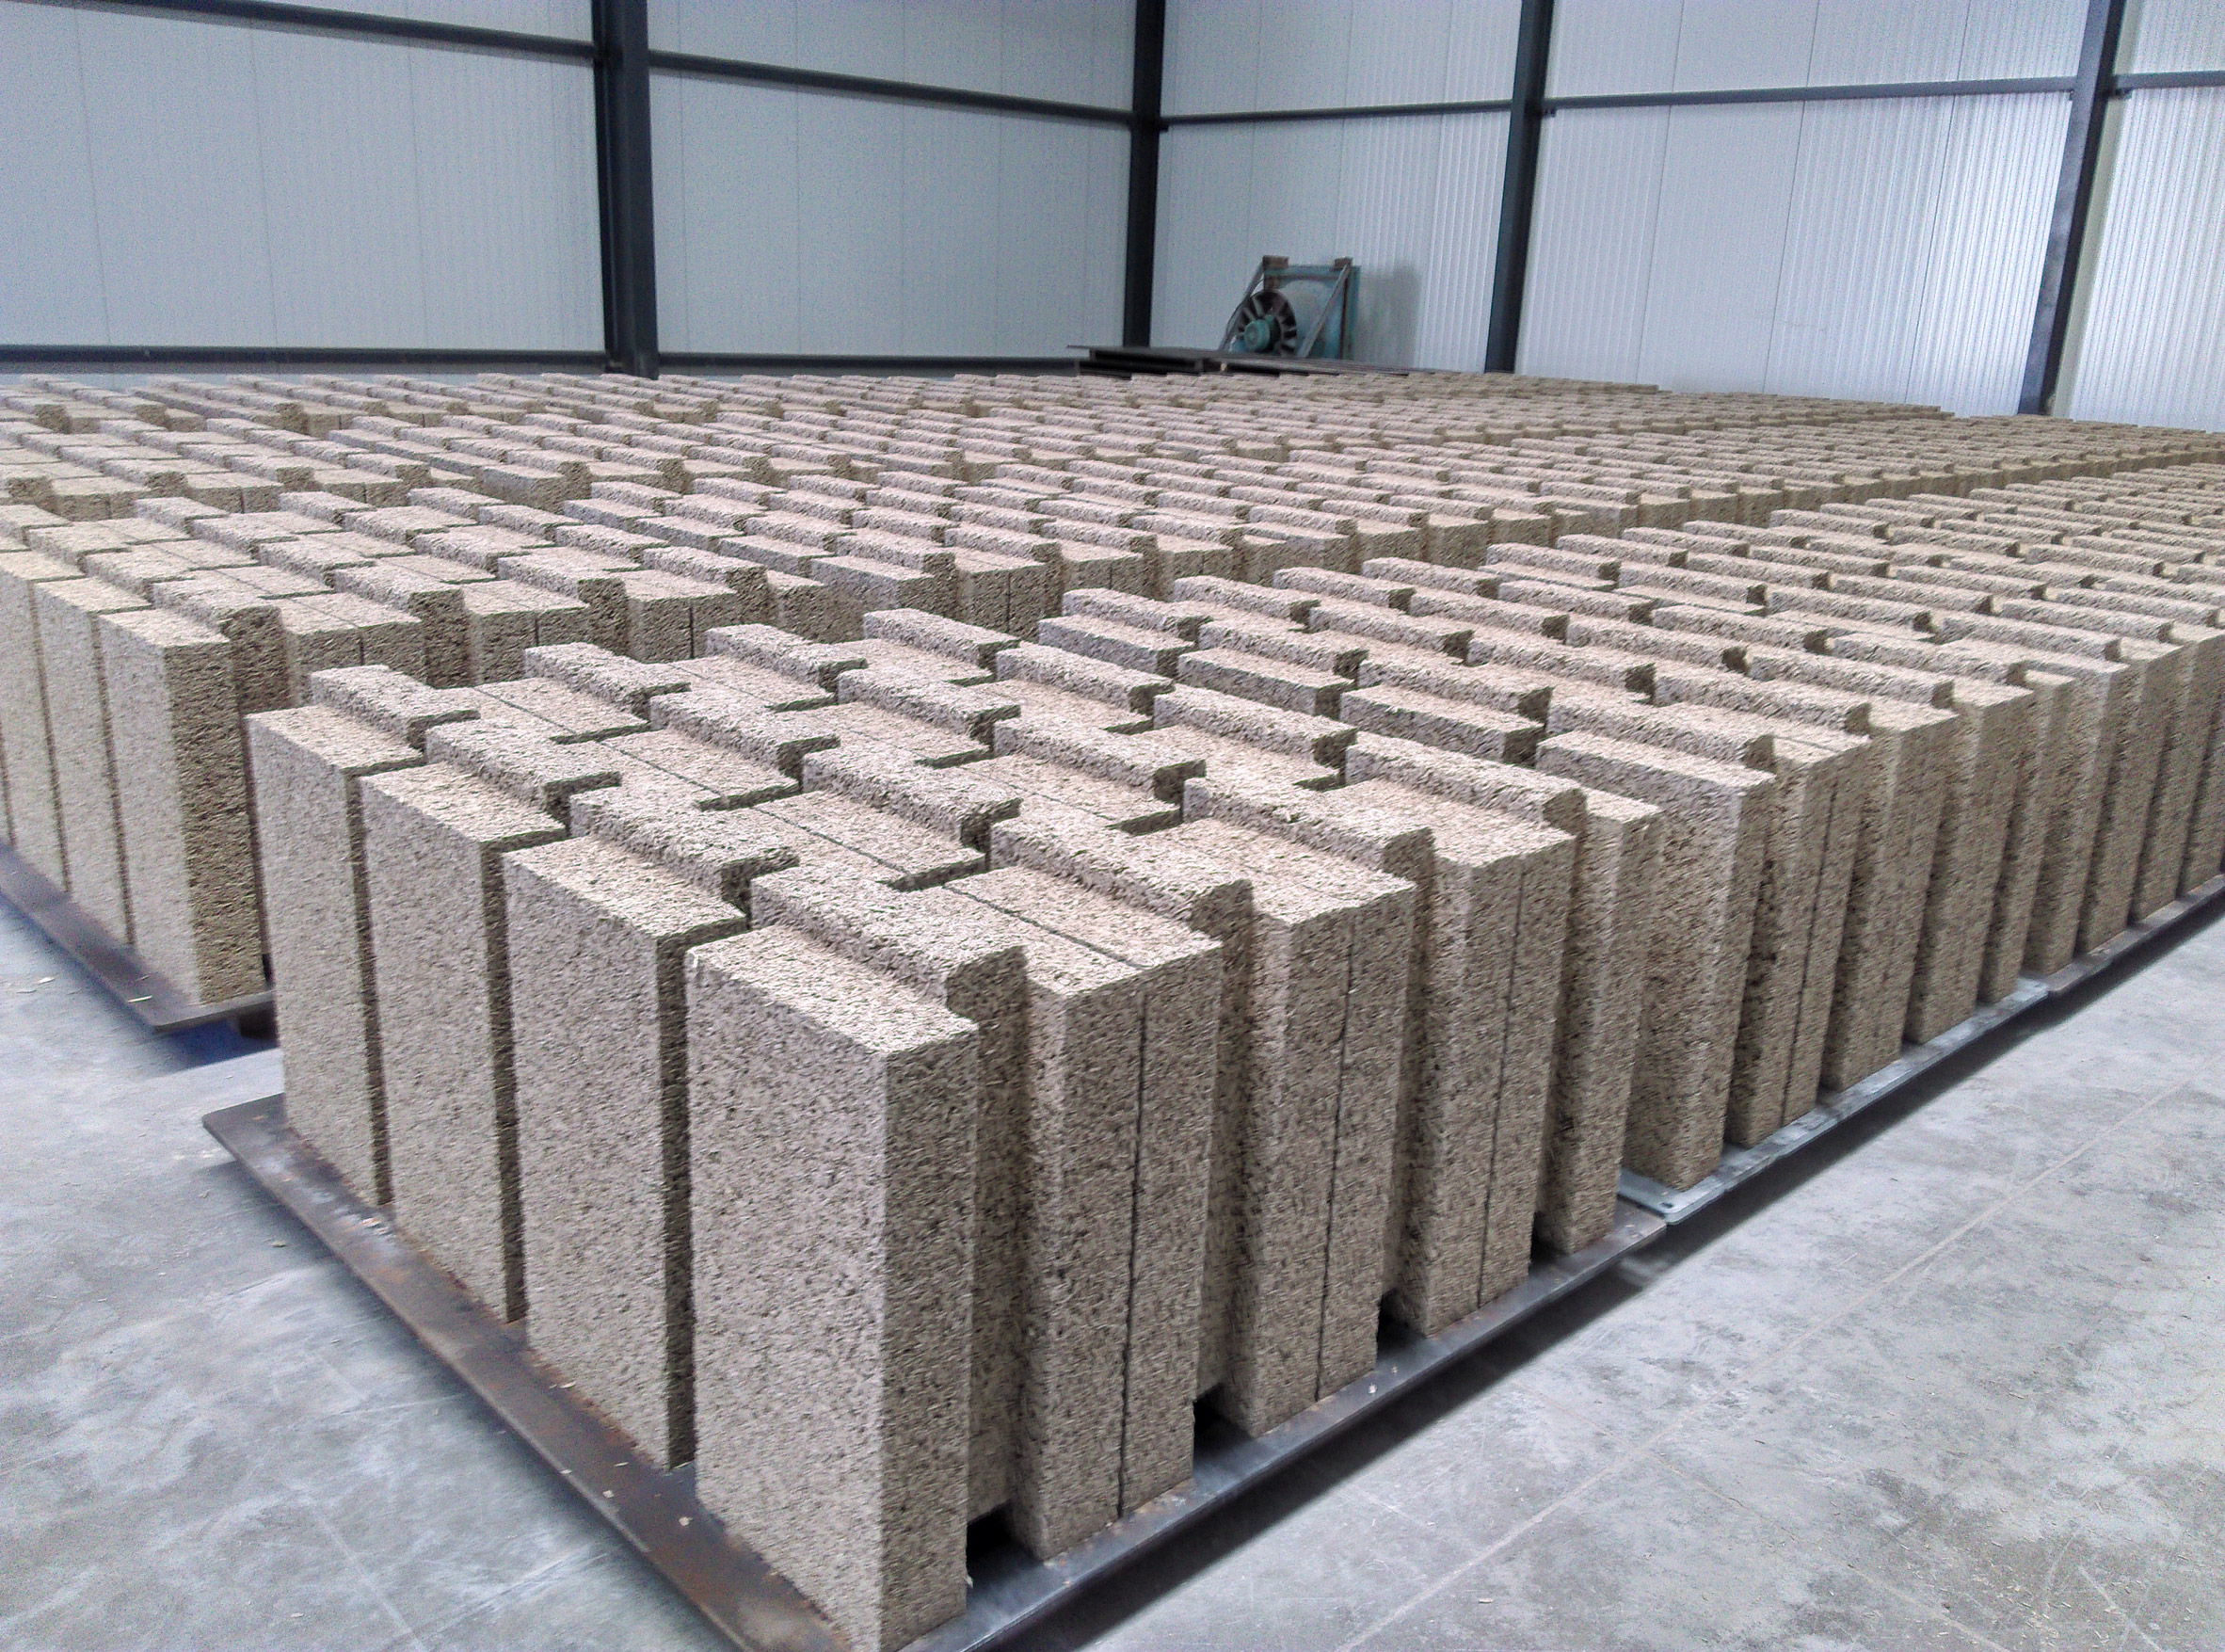 Image of the blocks used at the Pierre Chevet sports hall